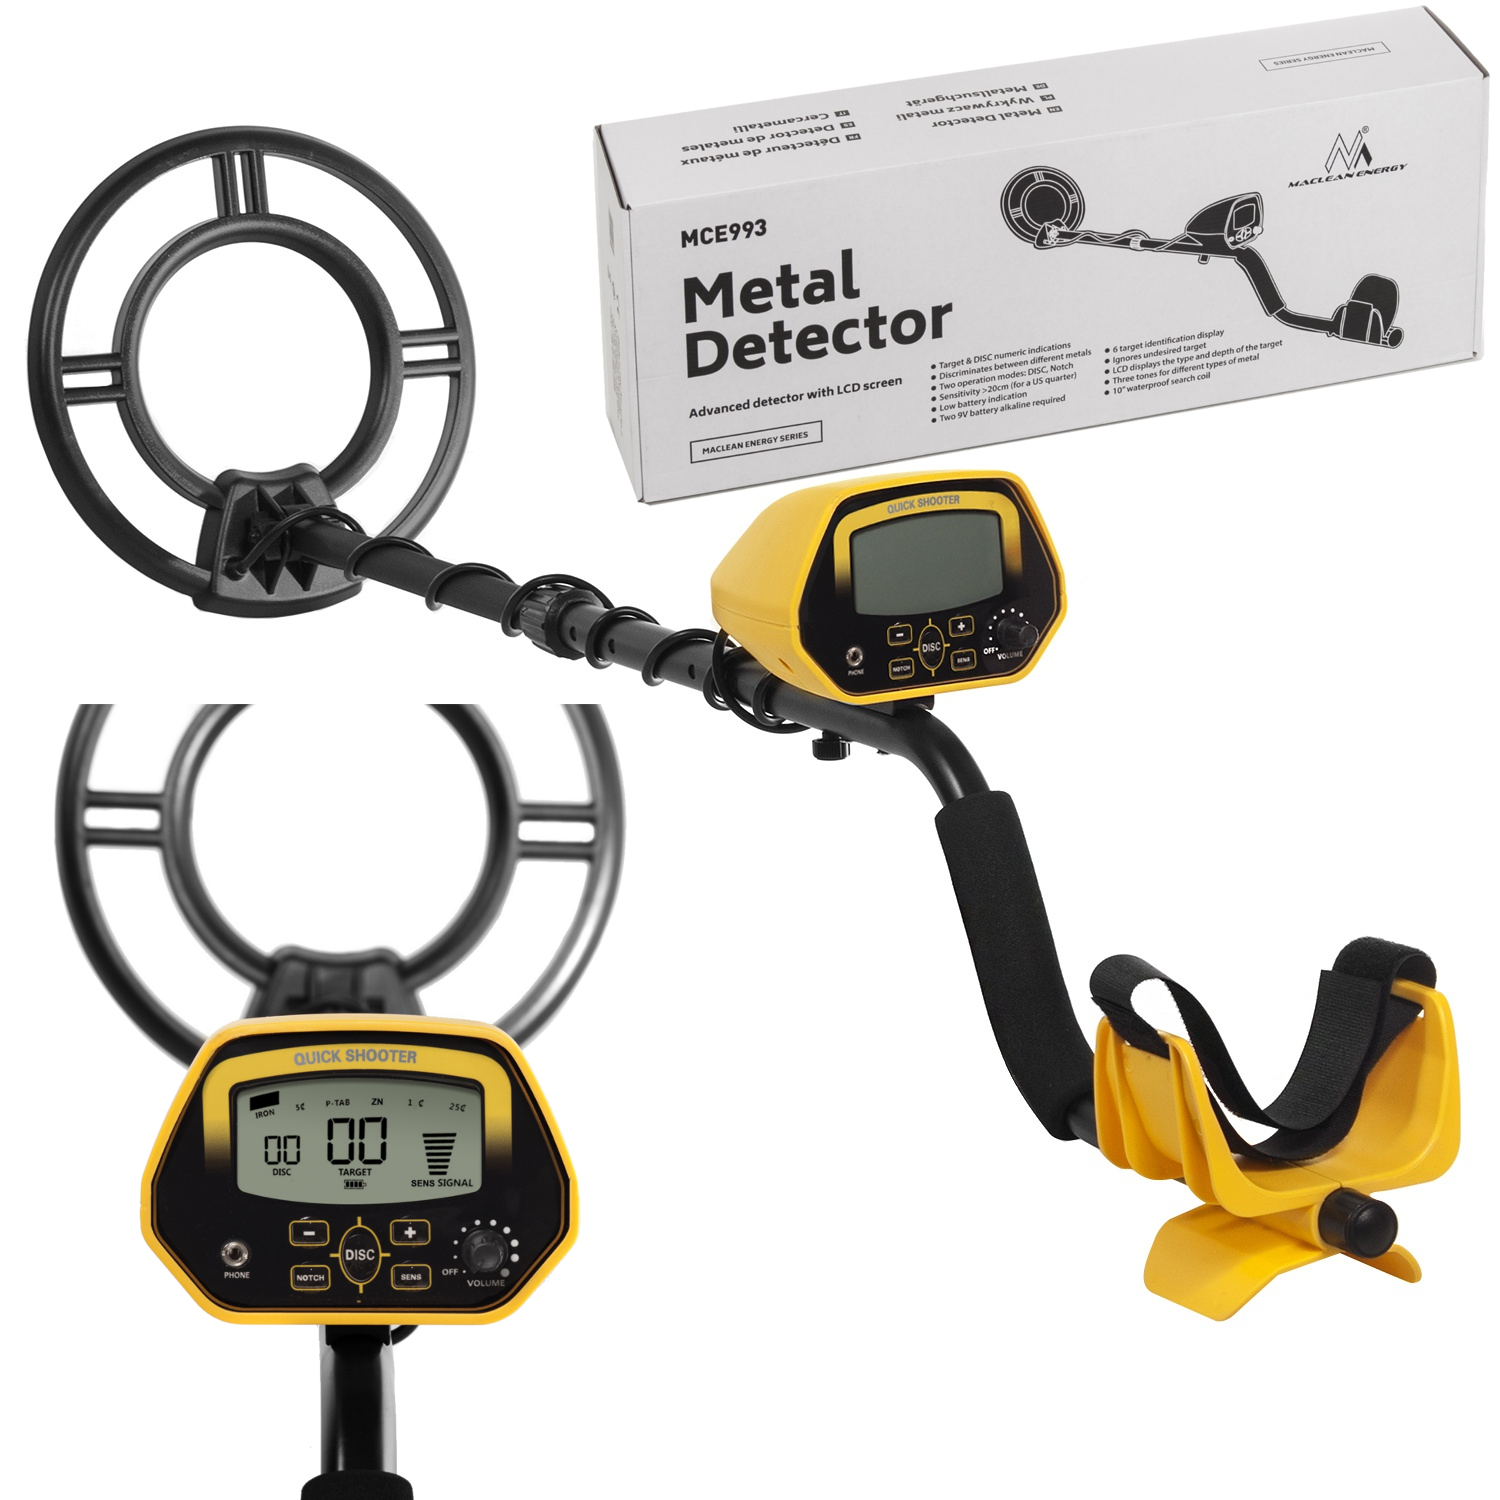 Item The METAL DETECTOR McLean MCE-993 Shooter